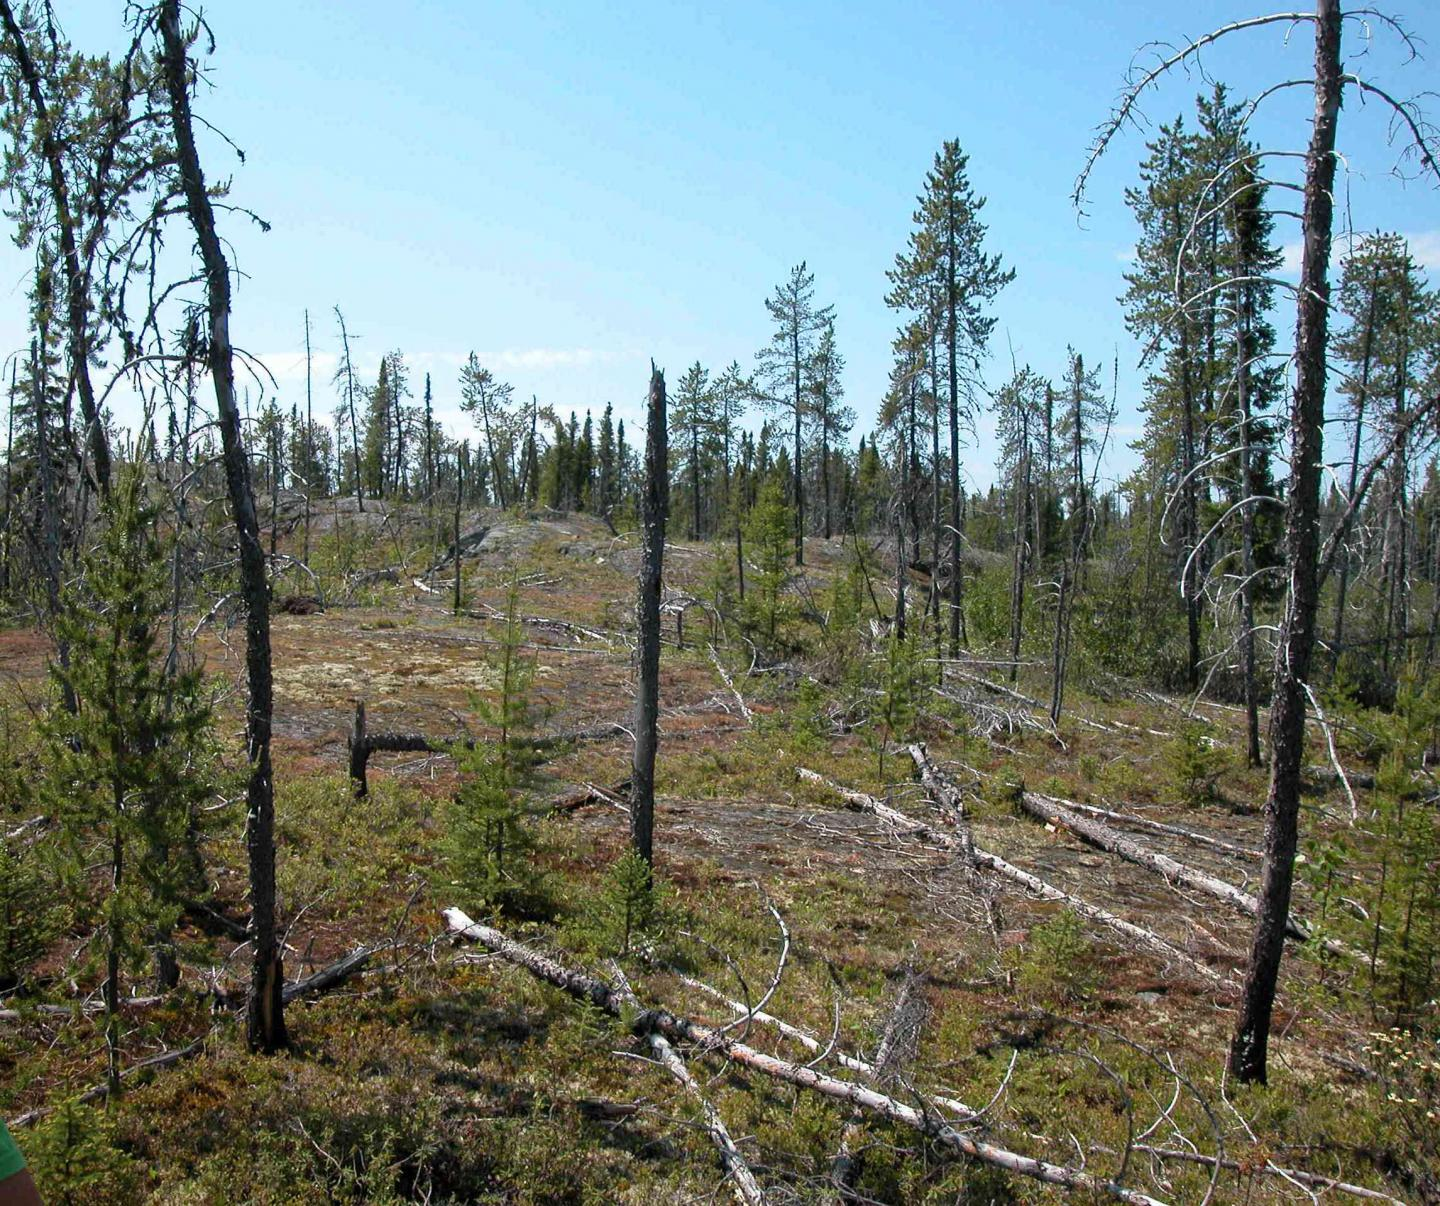 Post-Fire Forest in Eastern North America